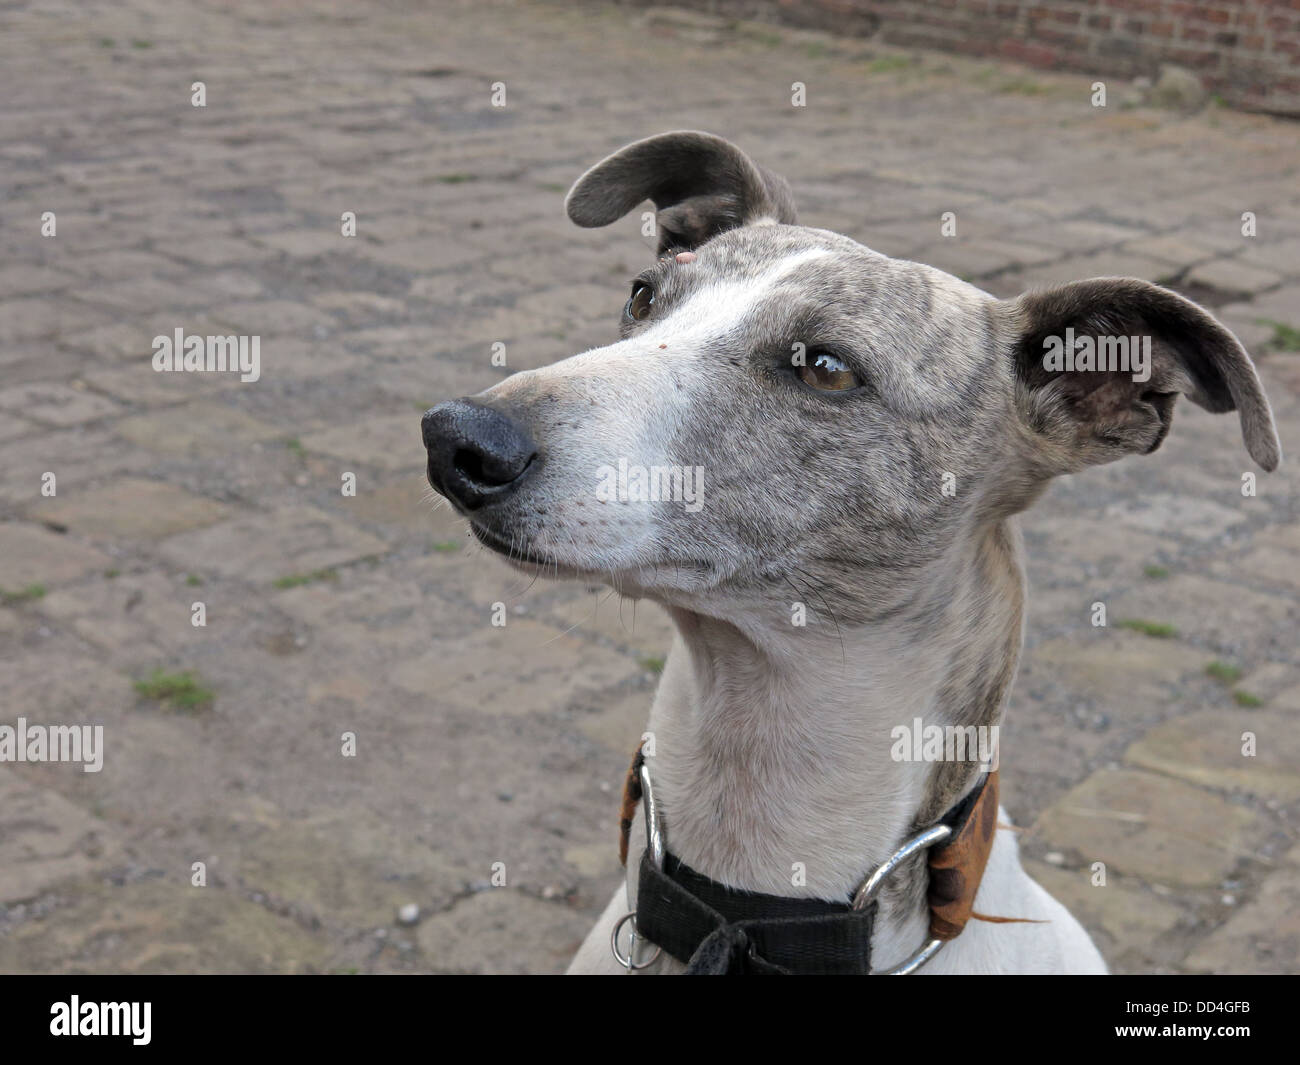 Grey pet dog, looking up, obediently - Stock Image